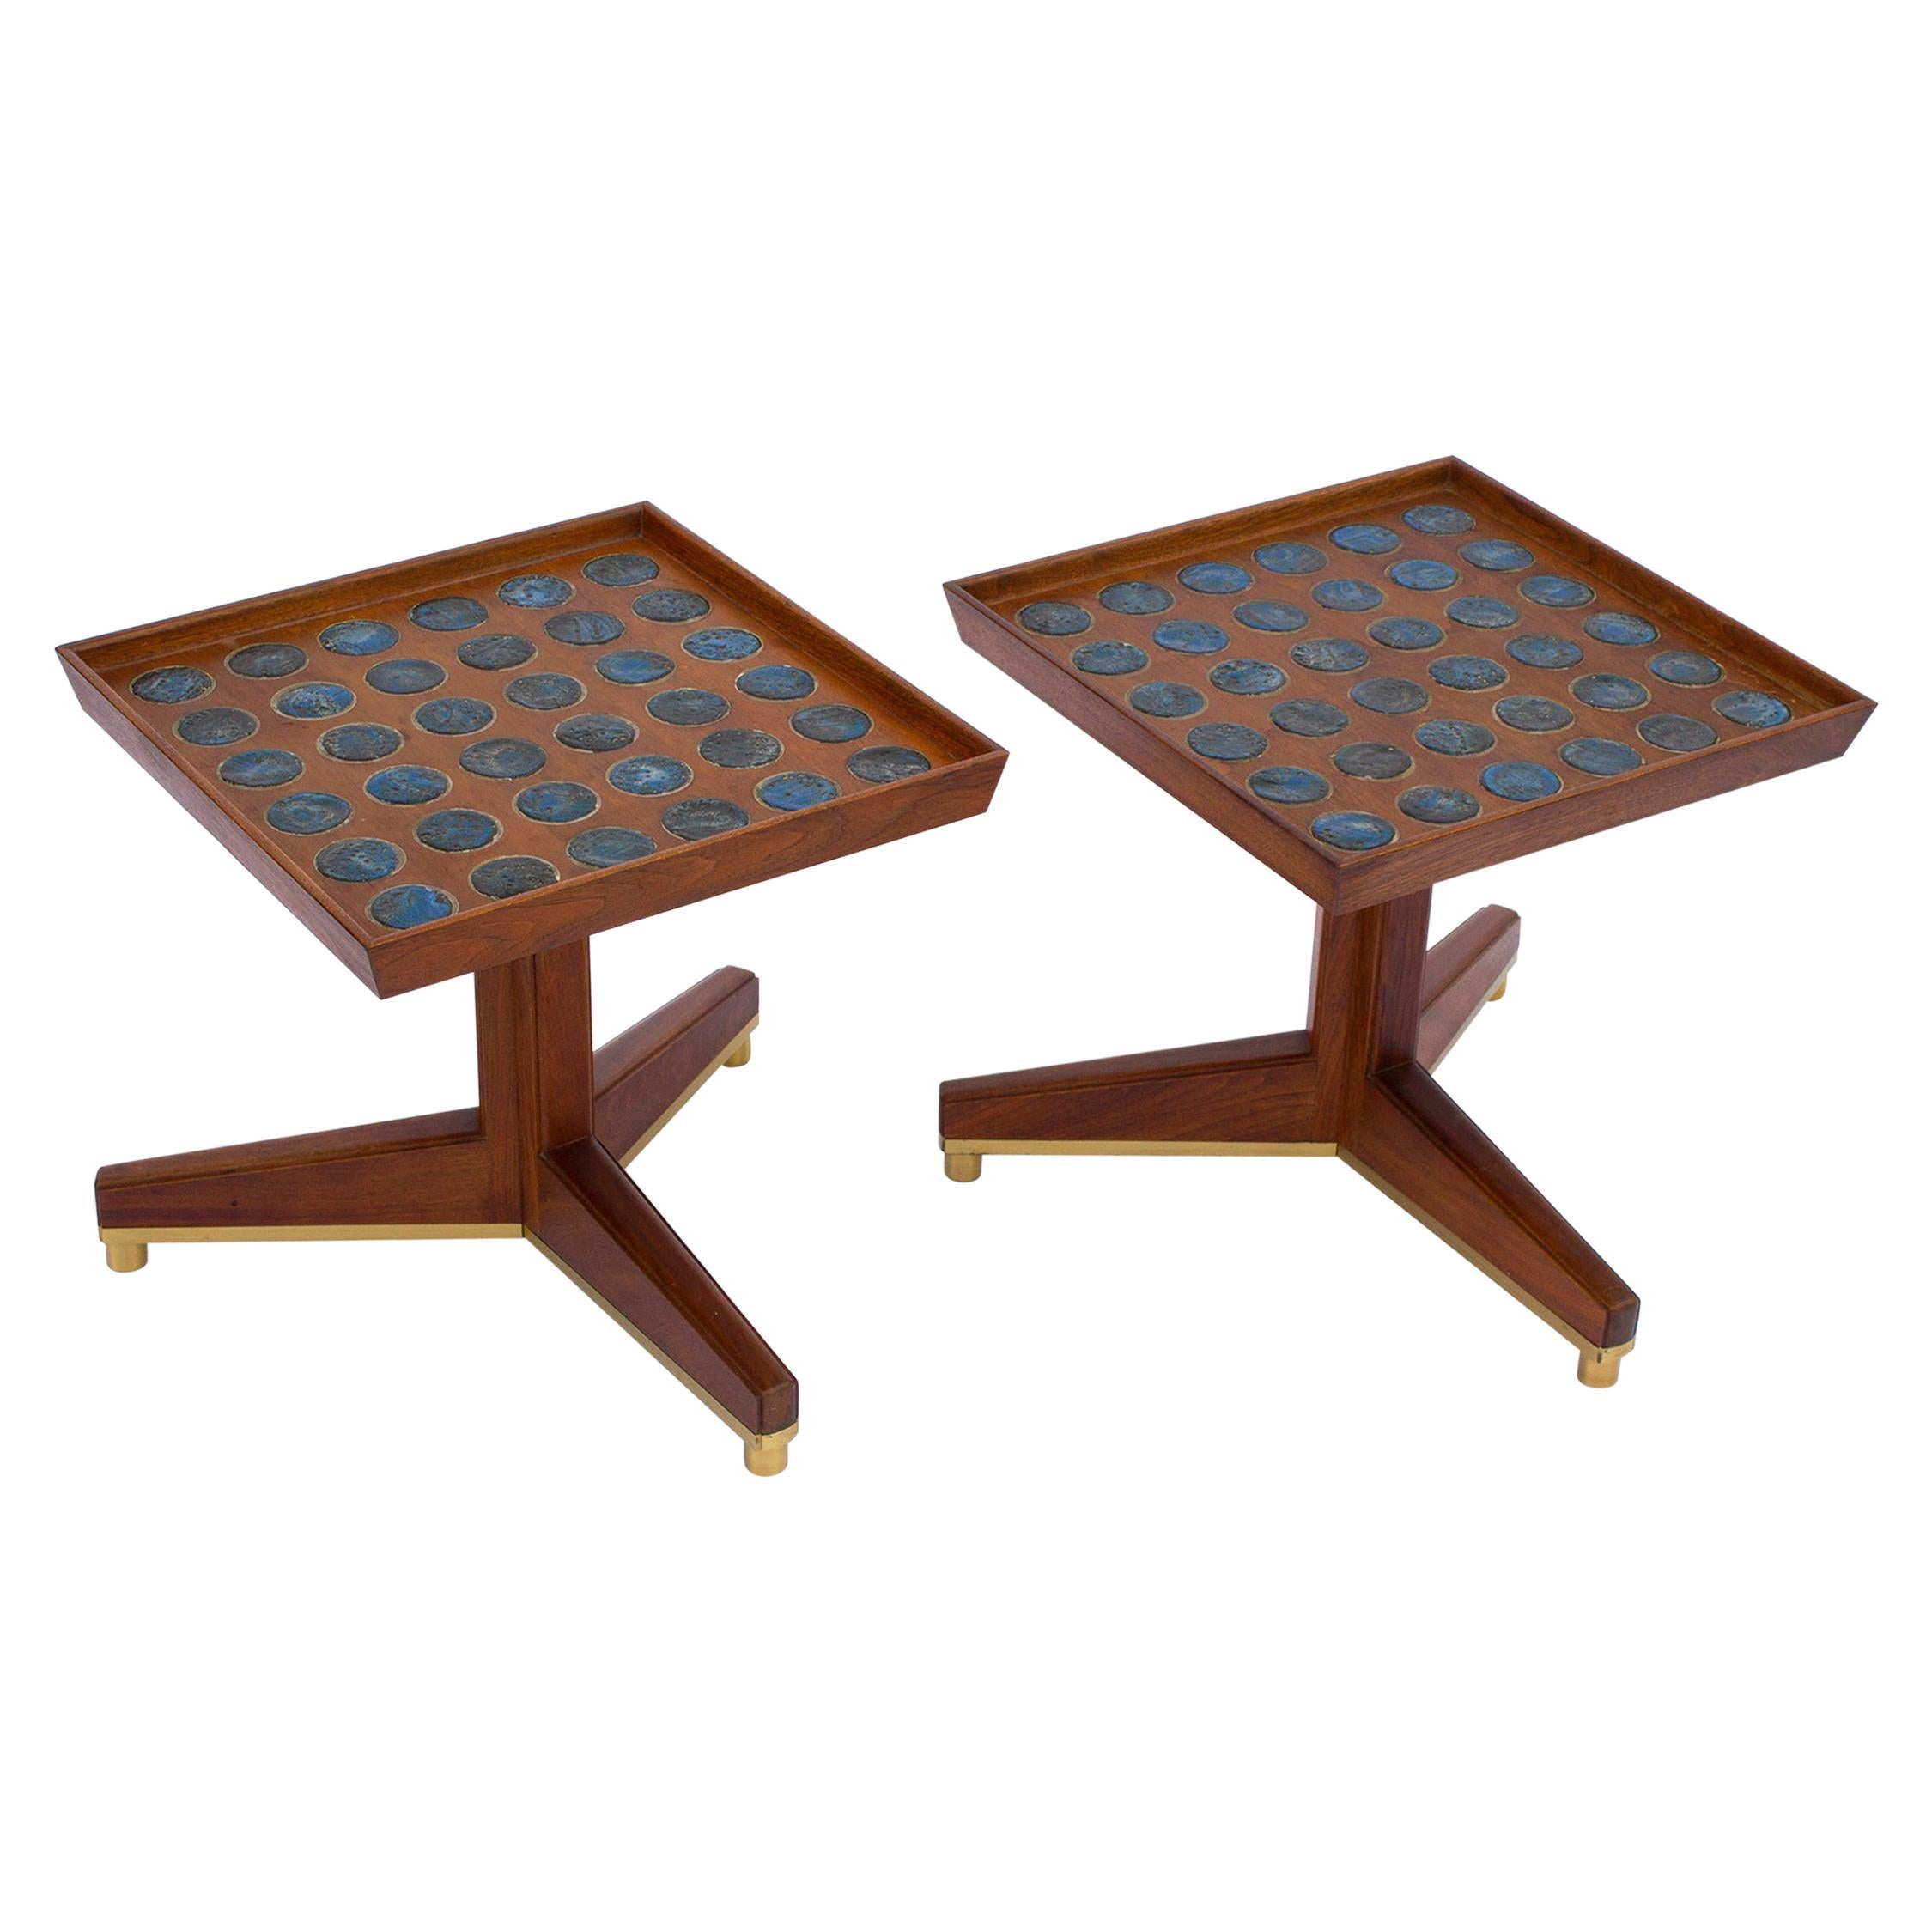 """Edward Wormley """"Janus"""" Occasional Tables with Natzler Tiles for Dunbar in Walnut"""